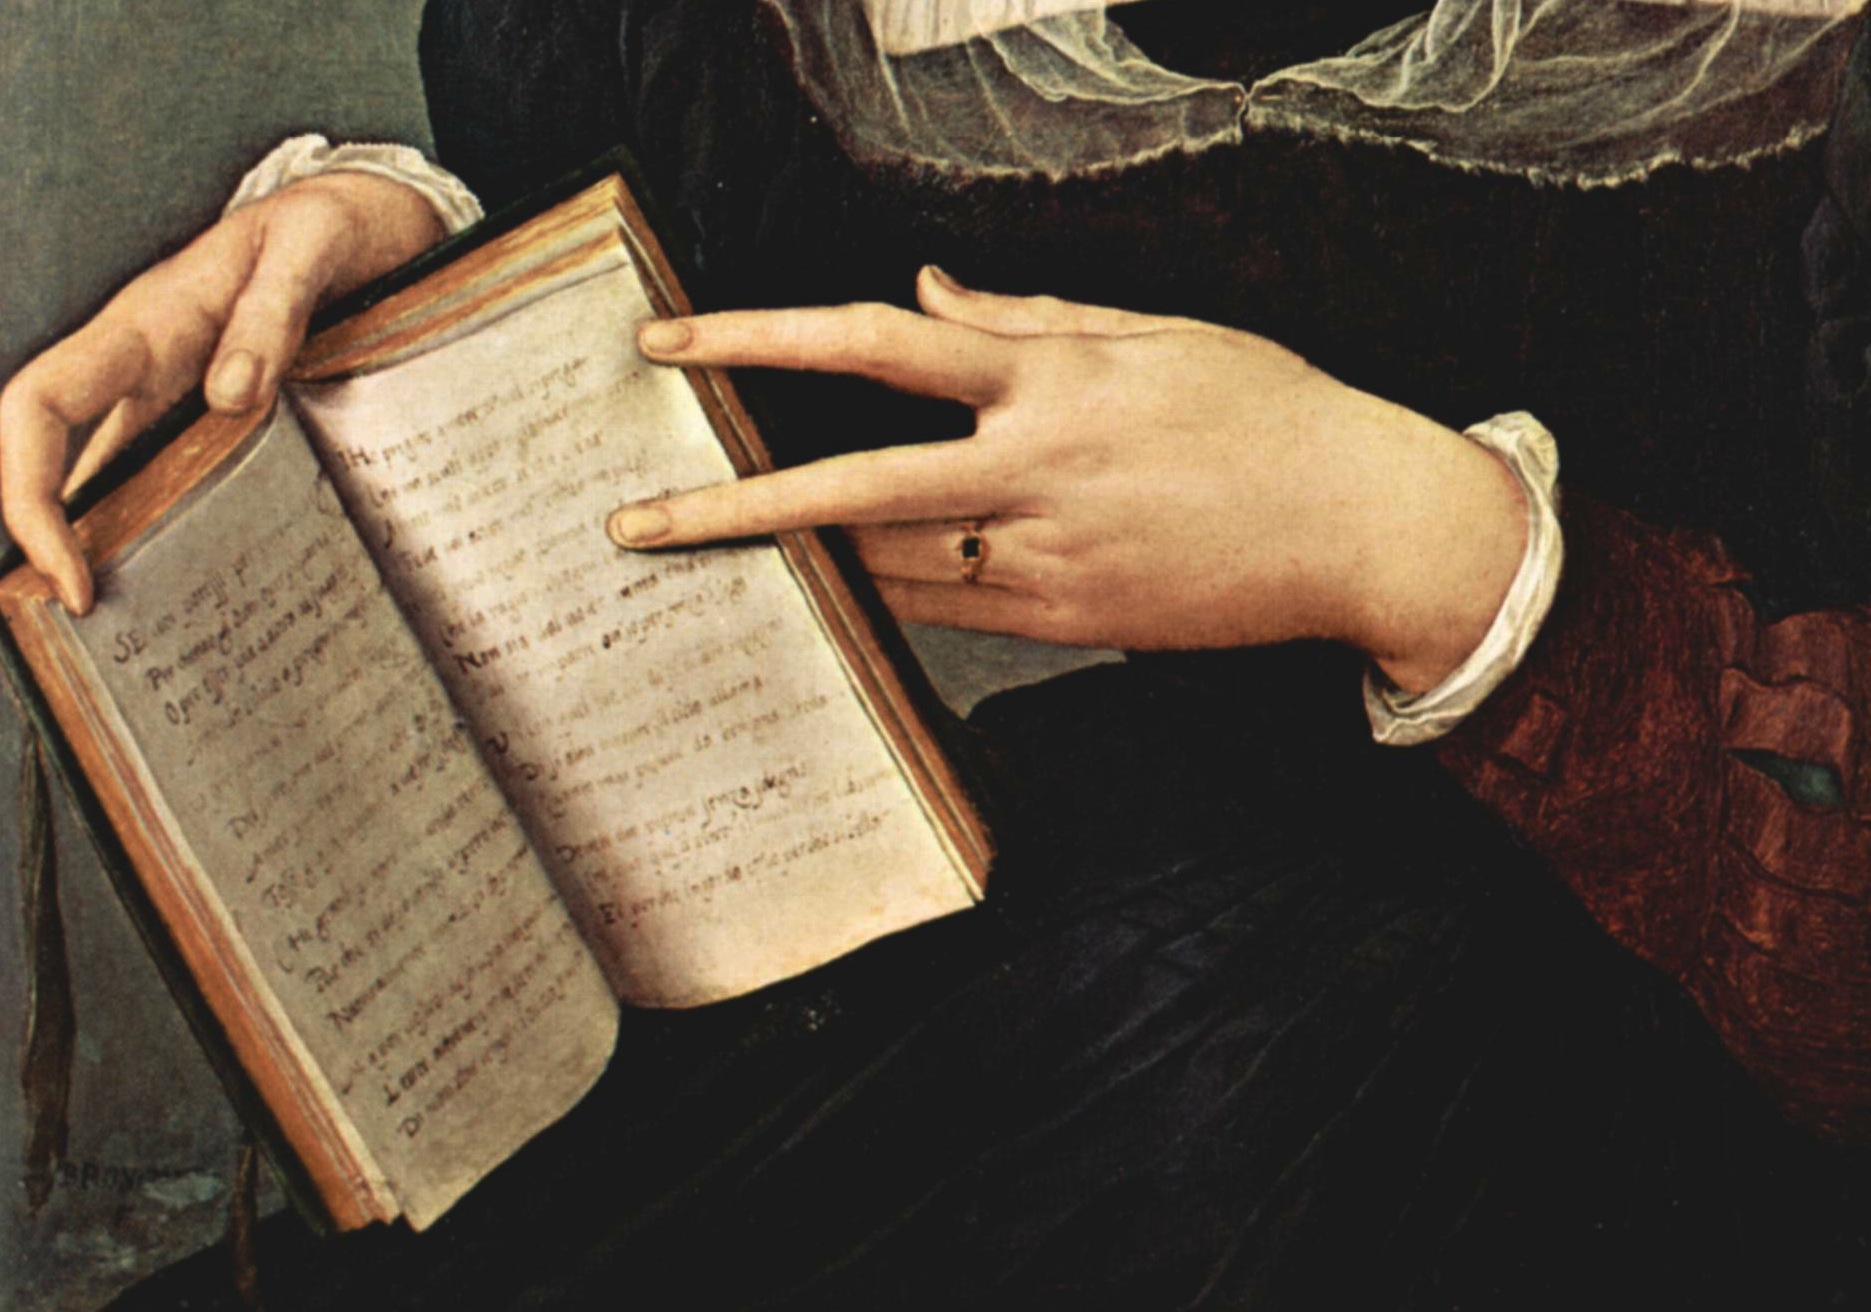 Bronzino book and hands